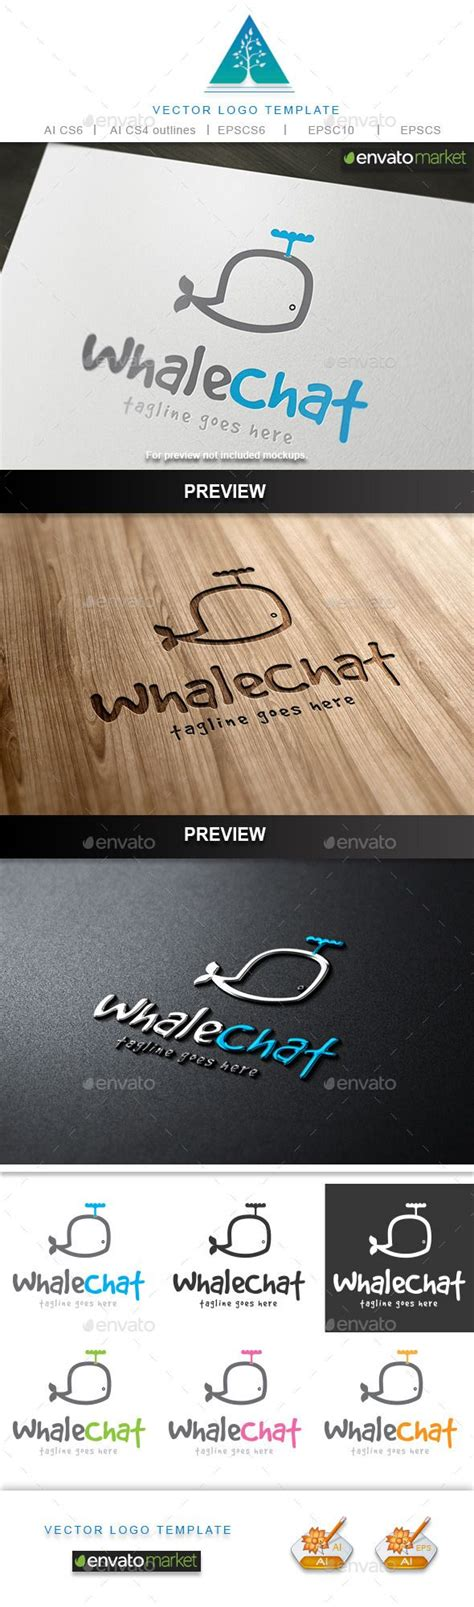 Whale Chat whale chat logo logo design template logos and template